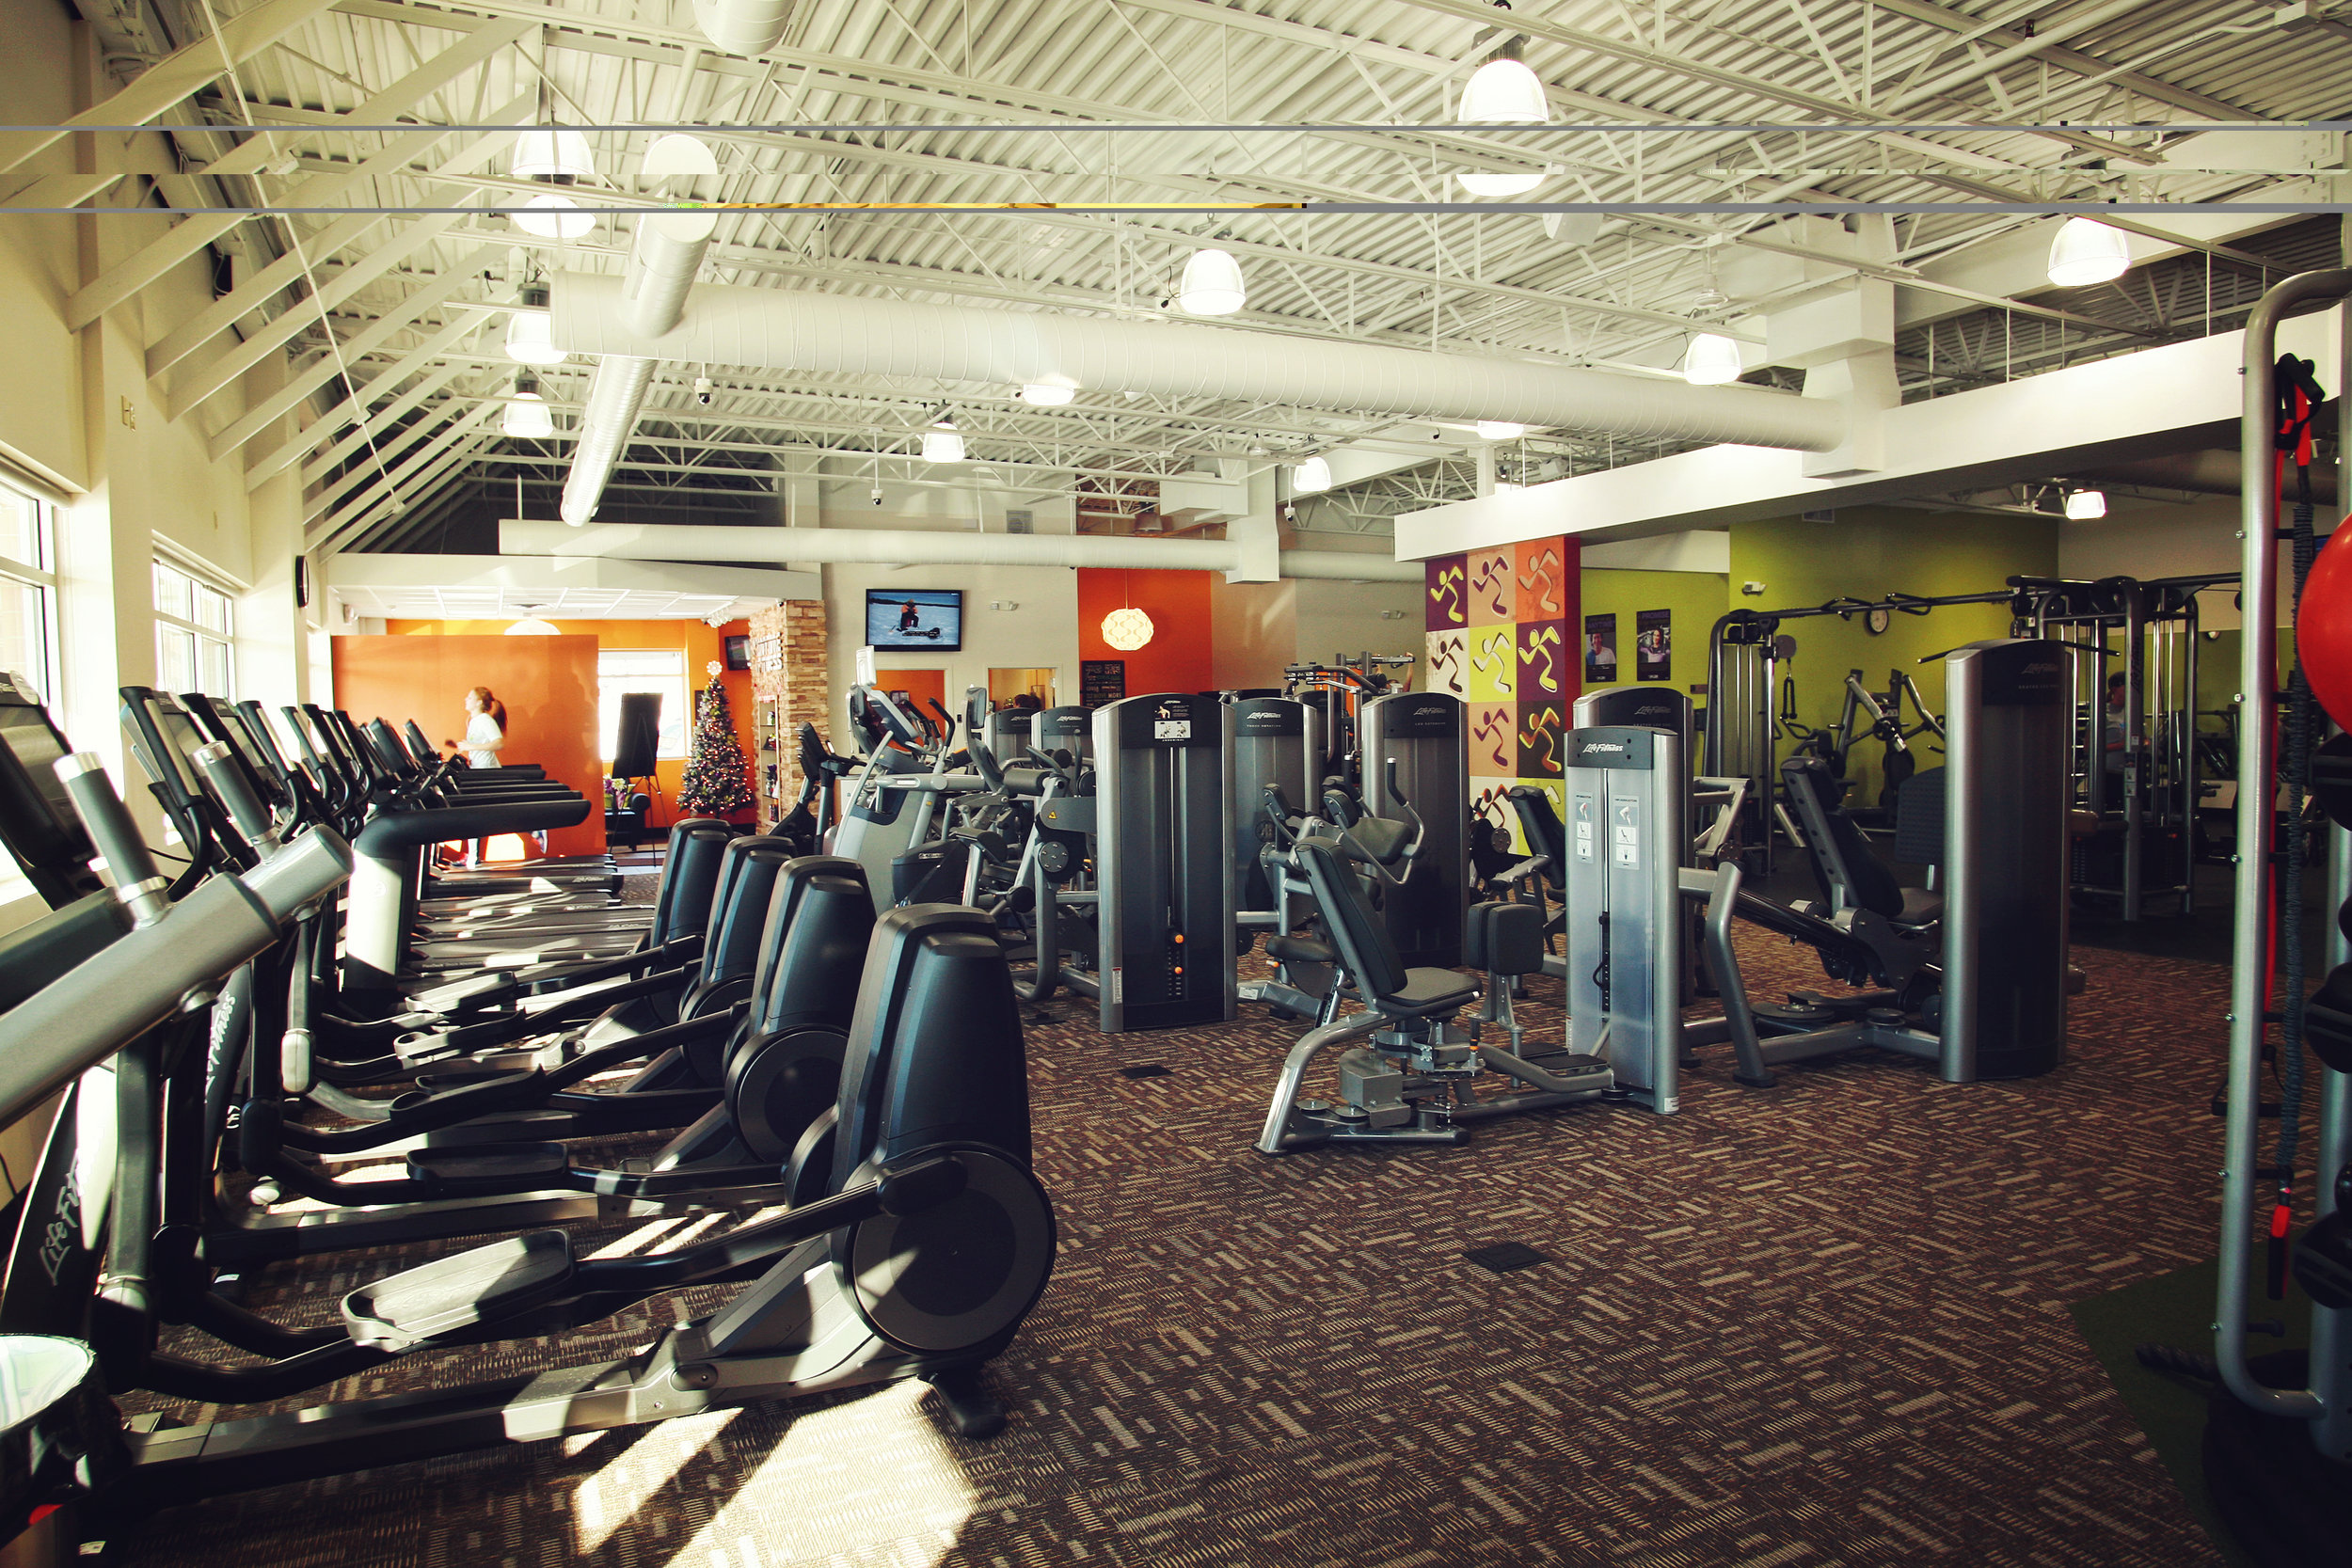 Anytime-Fitness-Club-Interior-1.jpg